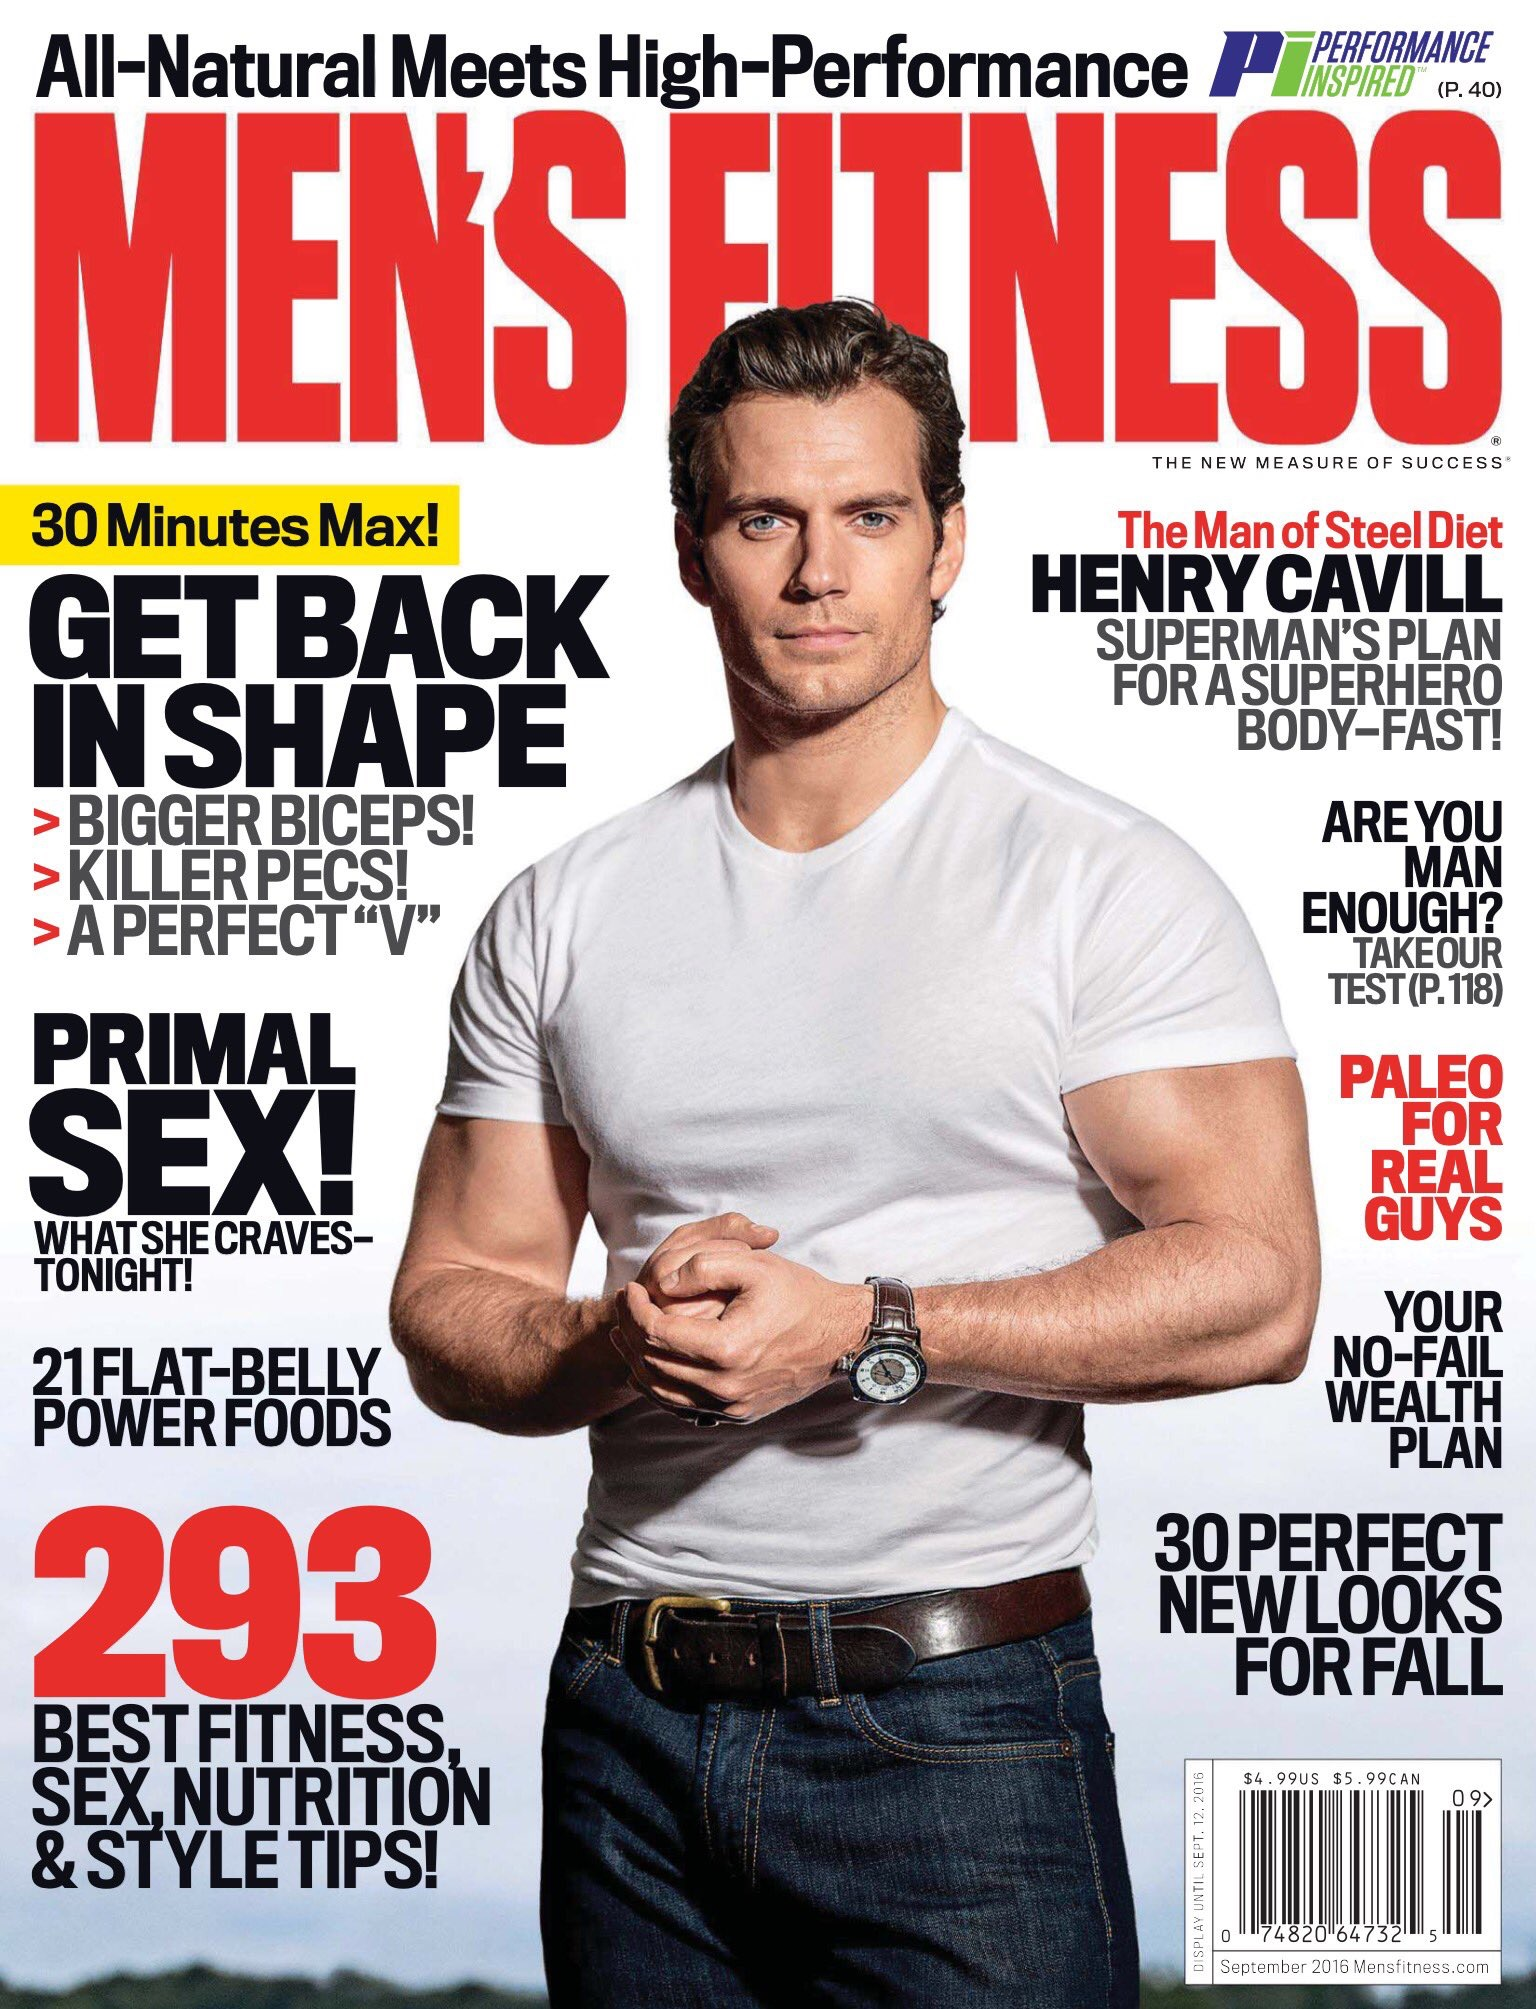 Henry Cavill looking yoked on the cover of Men's Fitness